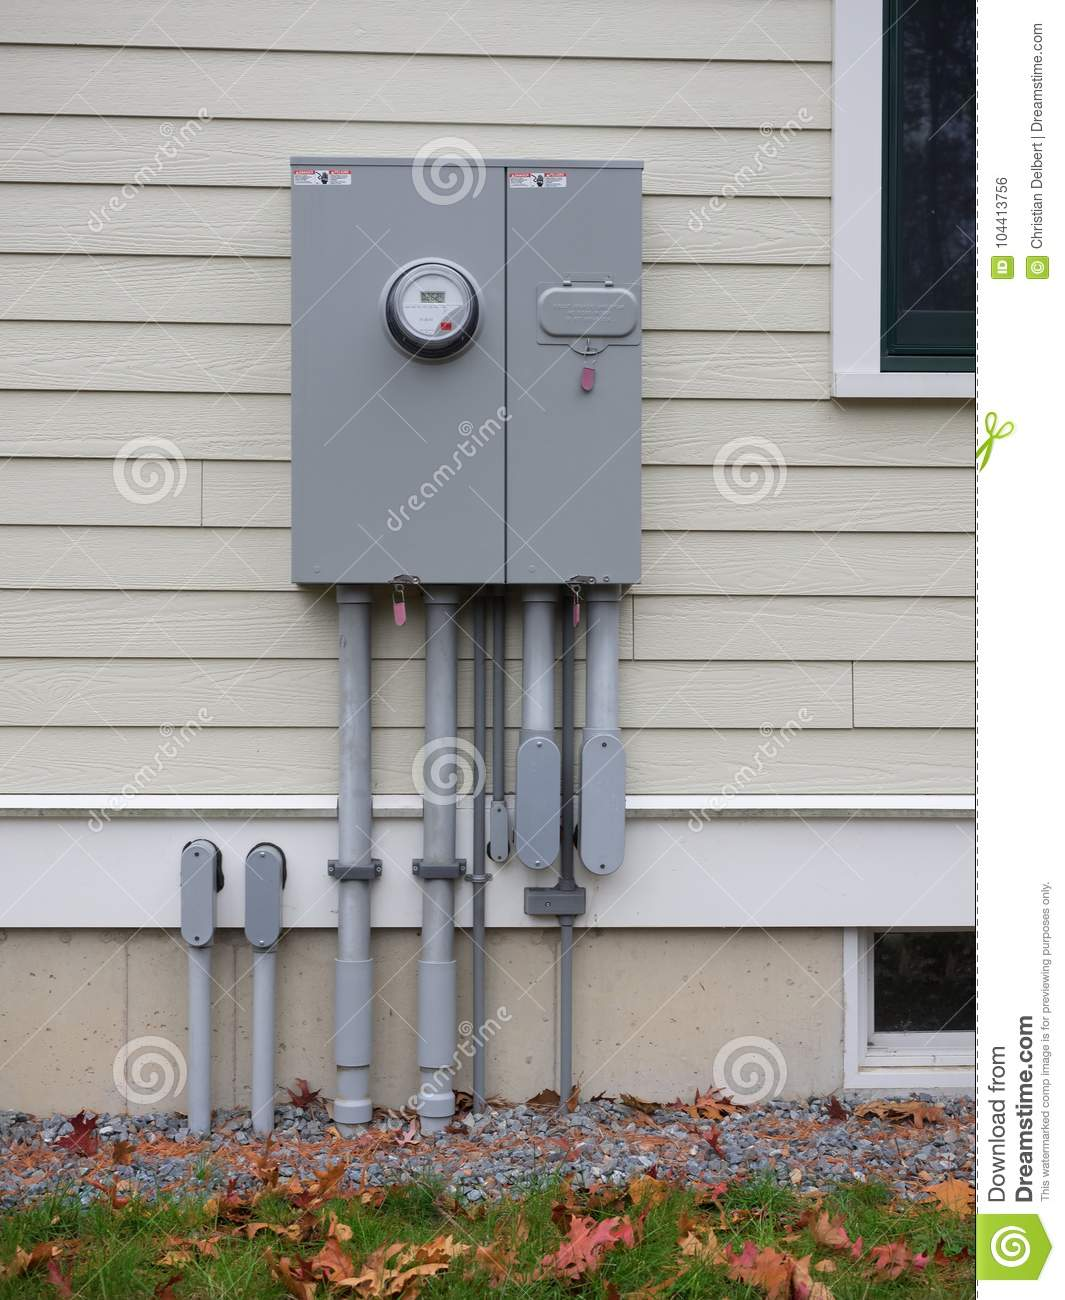 Outdoor Electrical Panel On New House Stock Photo - Image of company ...